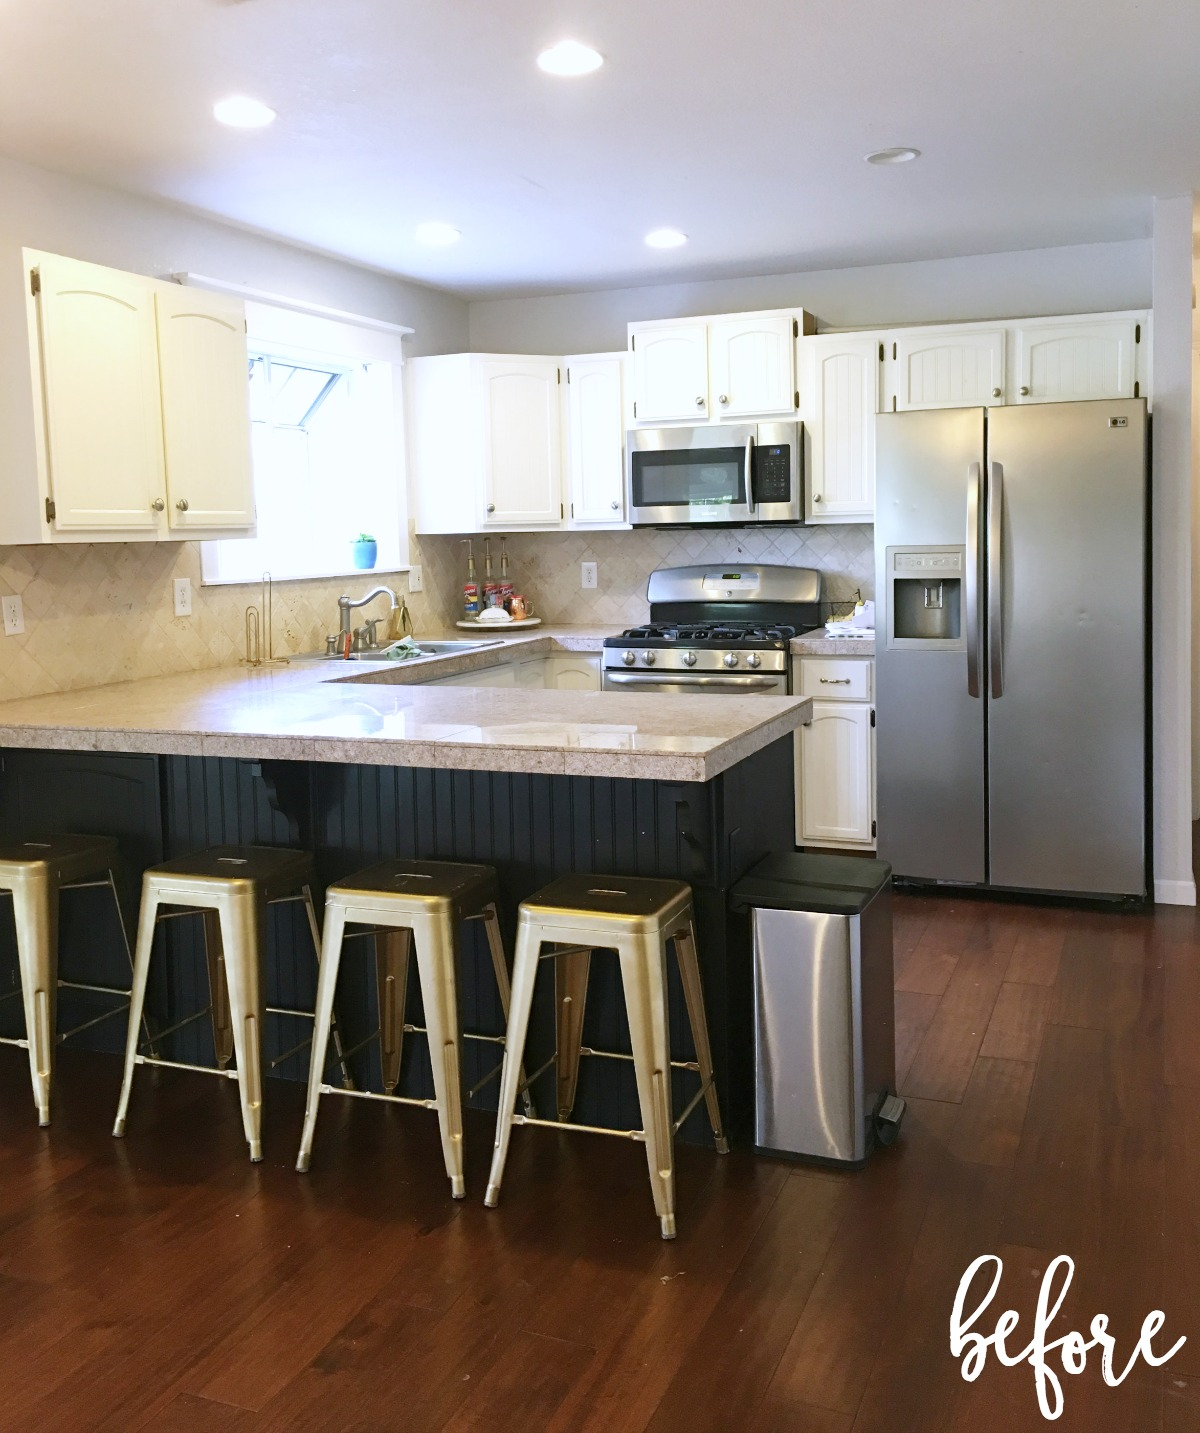 Prescott View Home Reno: DIY Kitchen Remodel Reveal